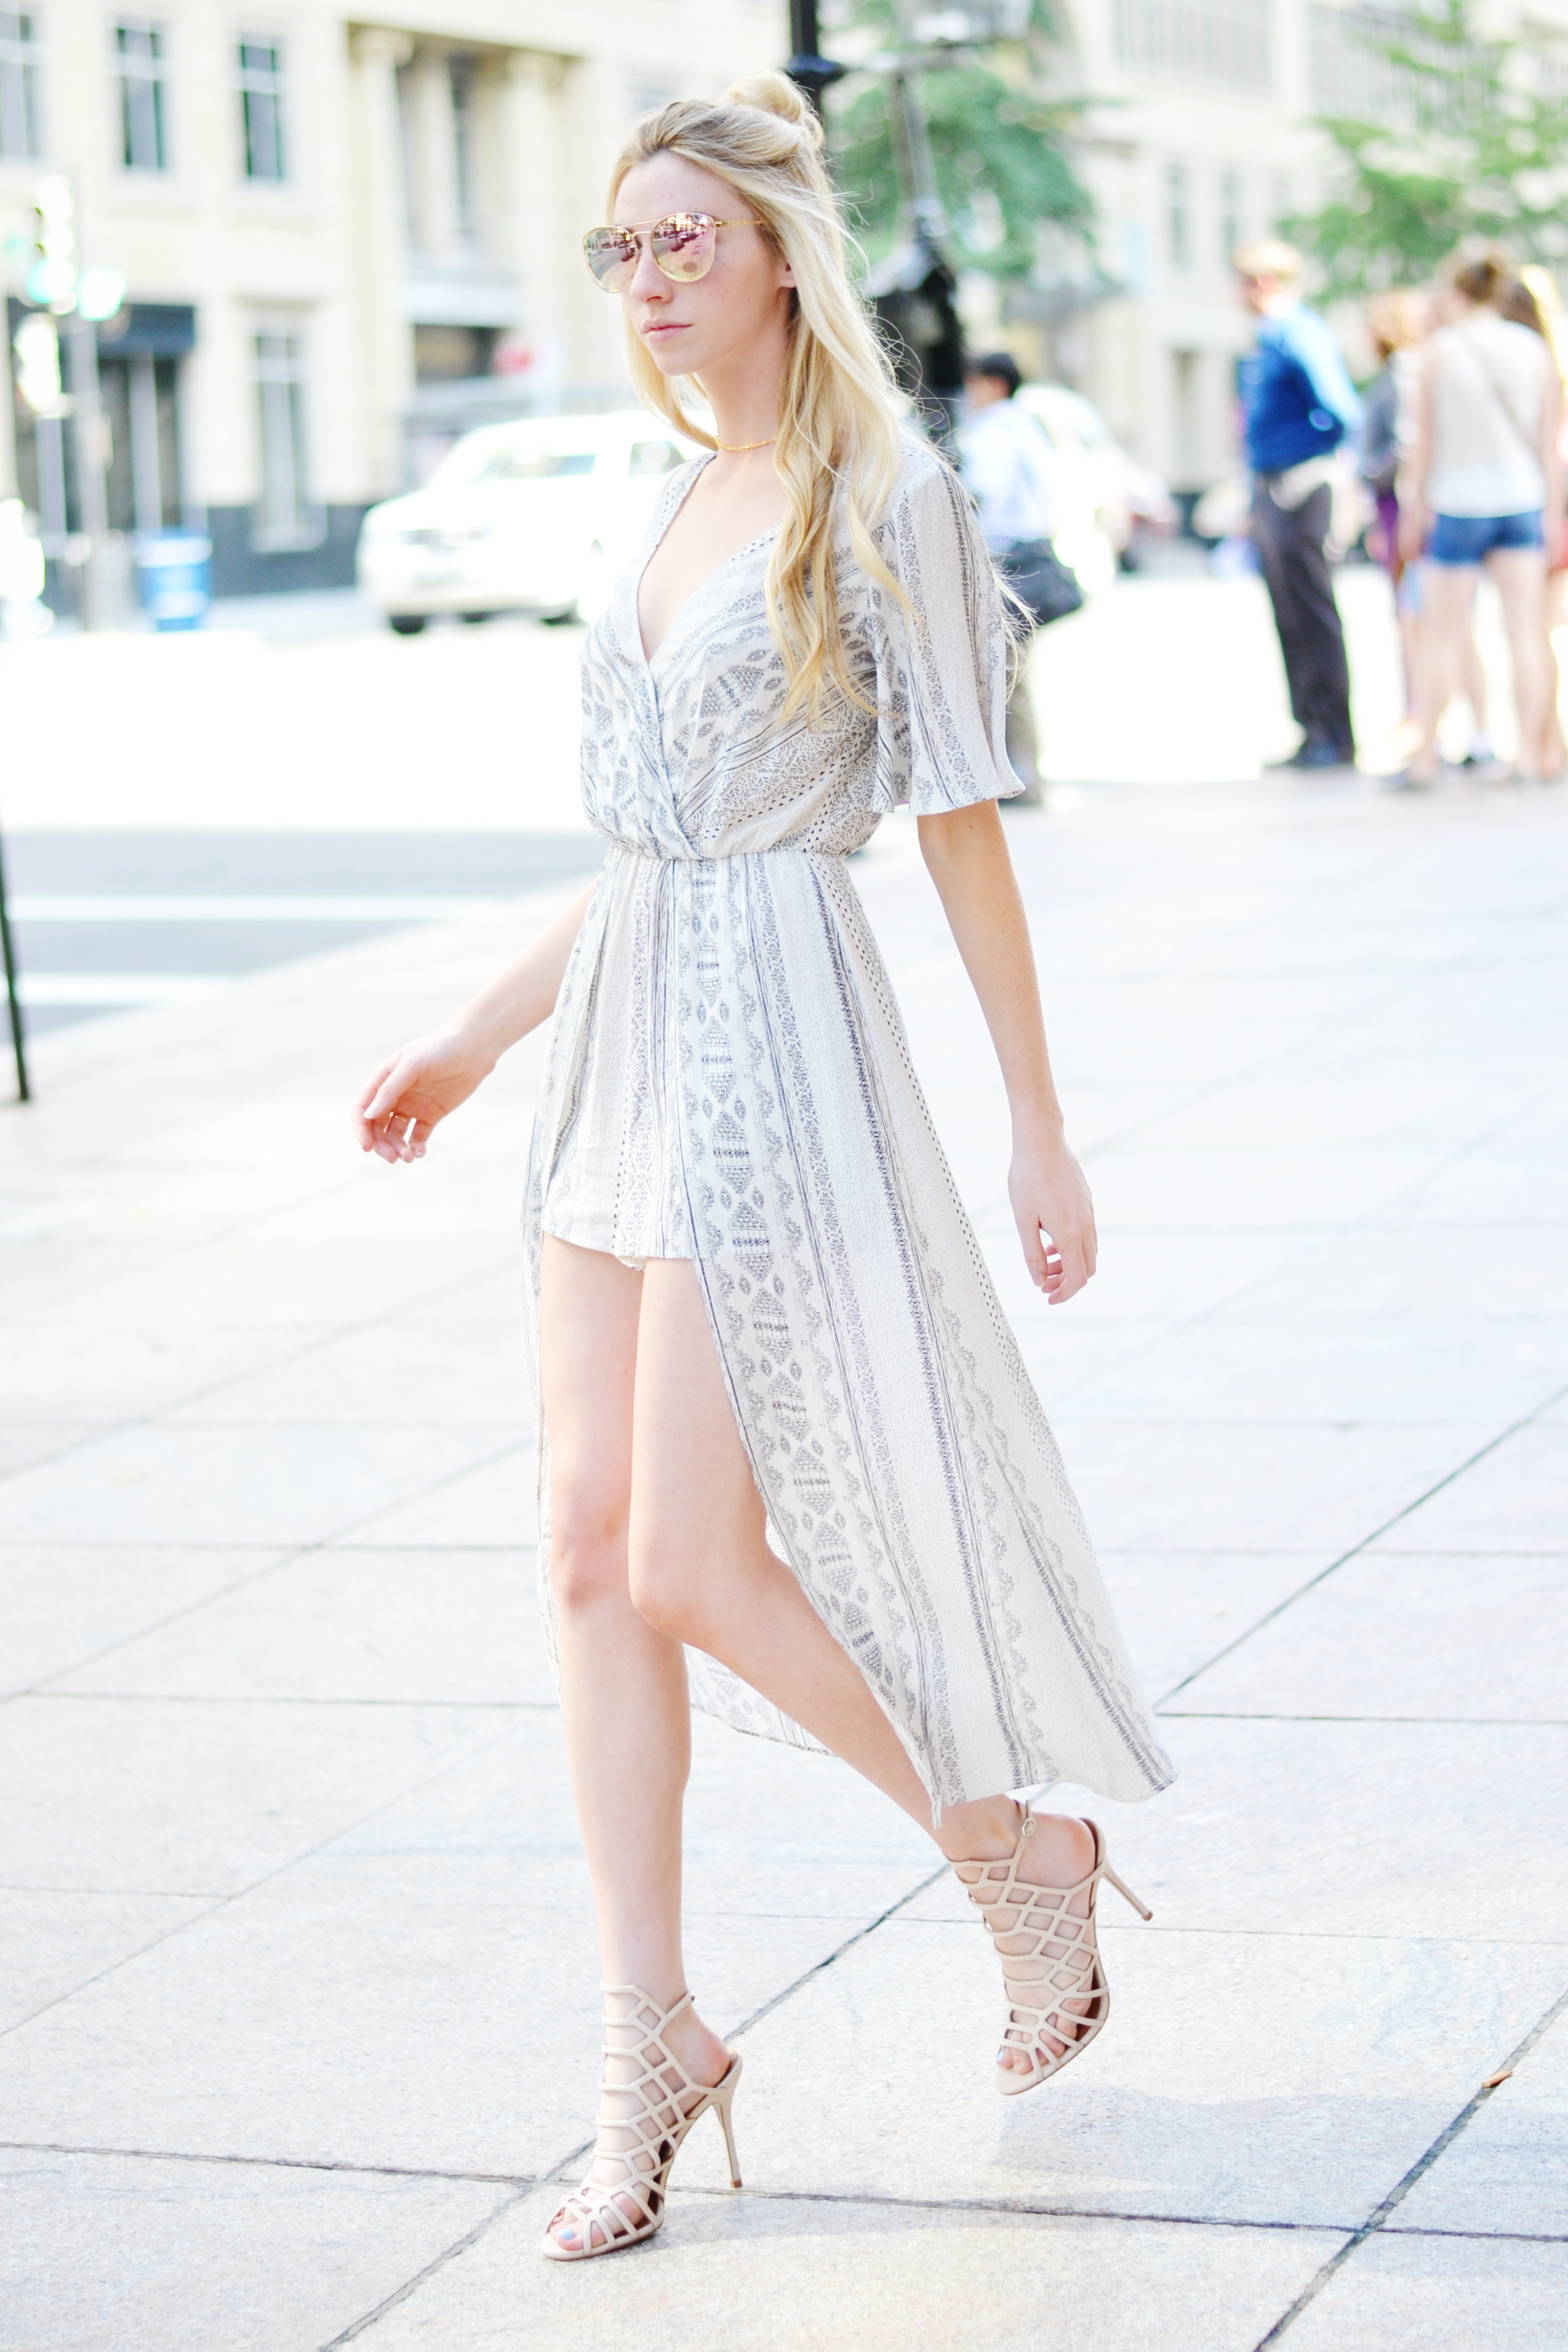 Blogger Summer Style (via Chic Now)